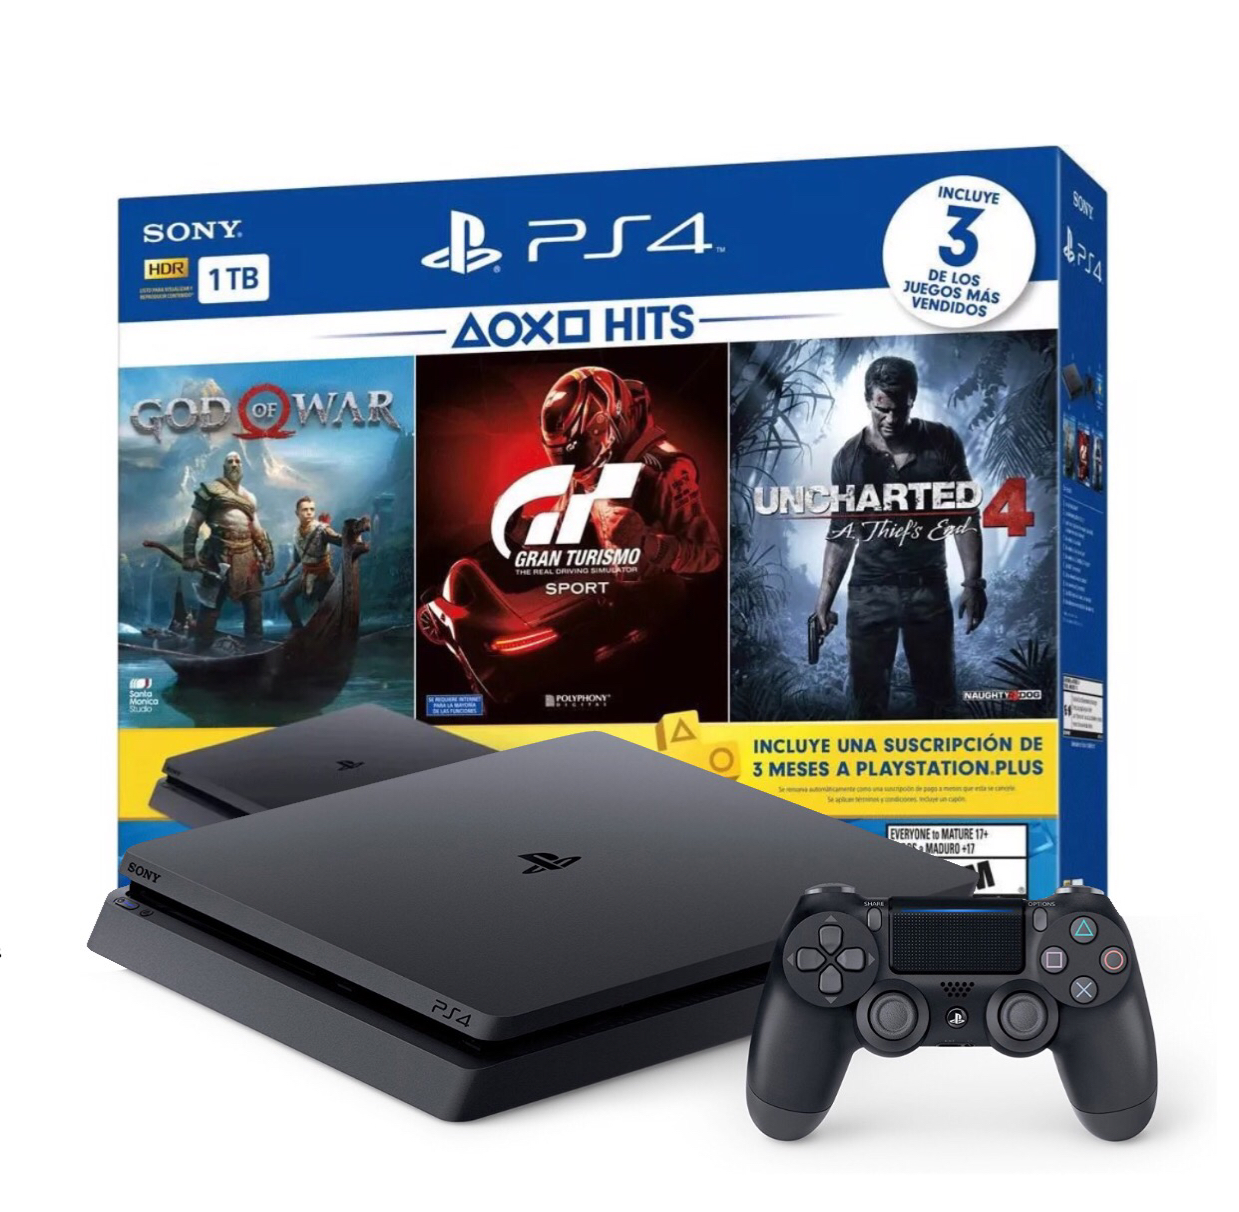 PS4 Slim 1TB Greatest Hits Bundle w/ 3 Games